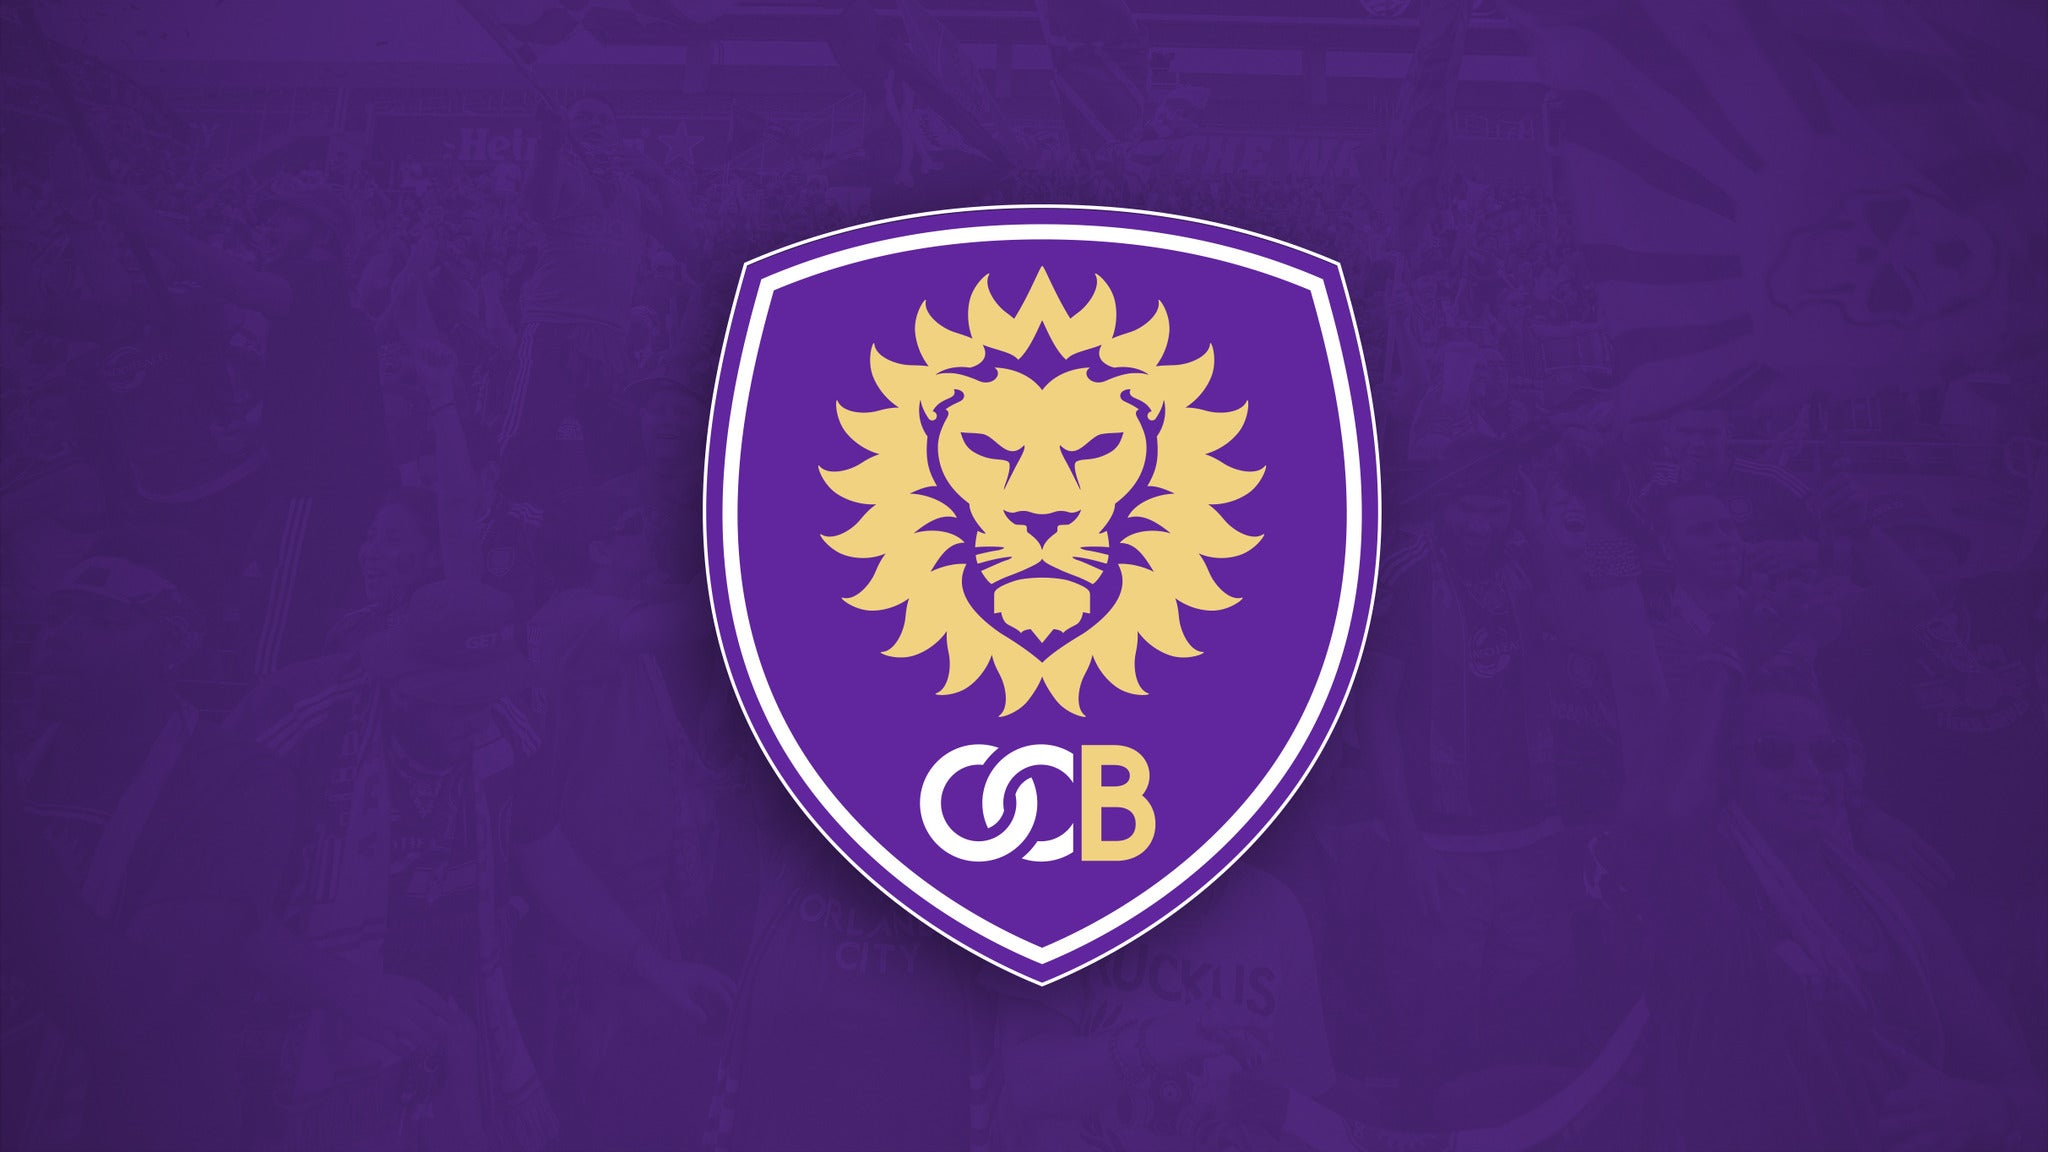 Orlando City B vs. Fort Lauderdale CF